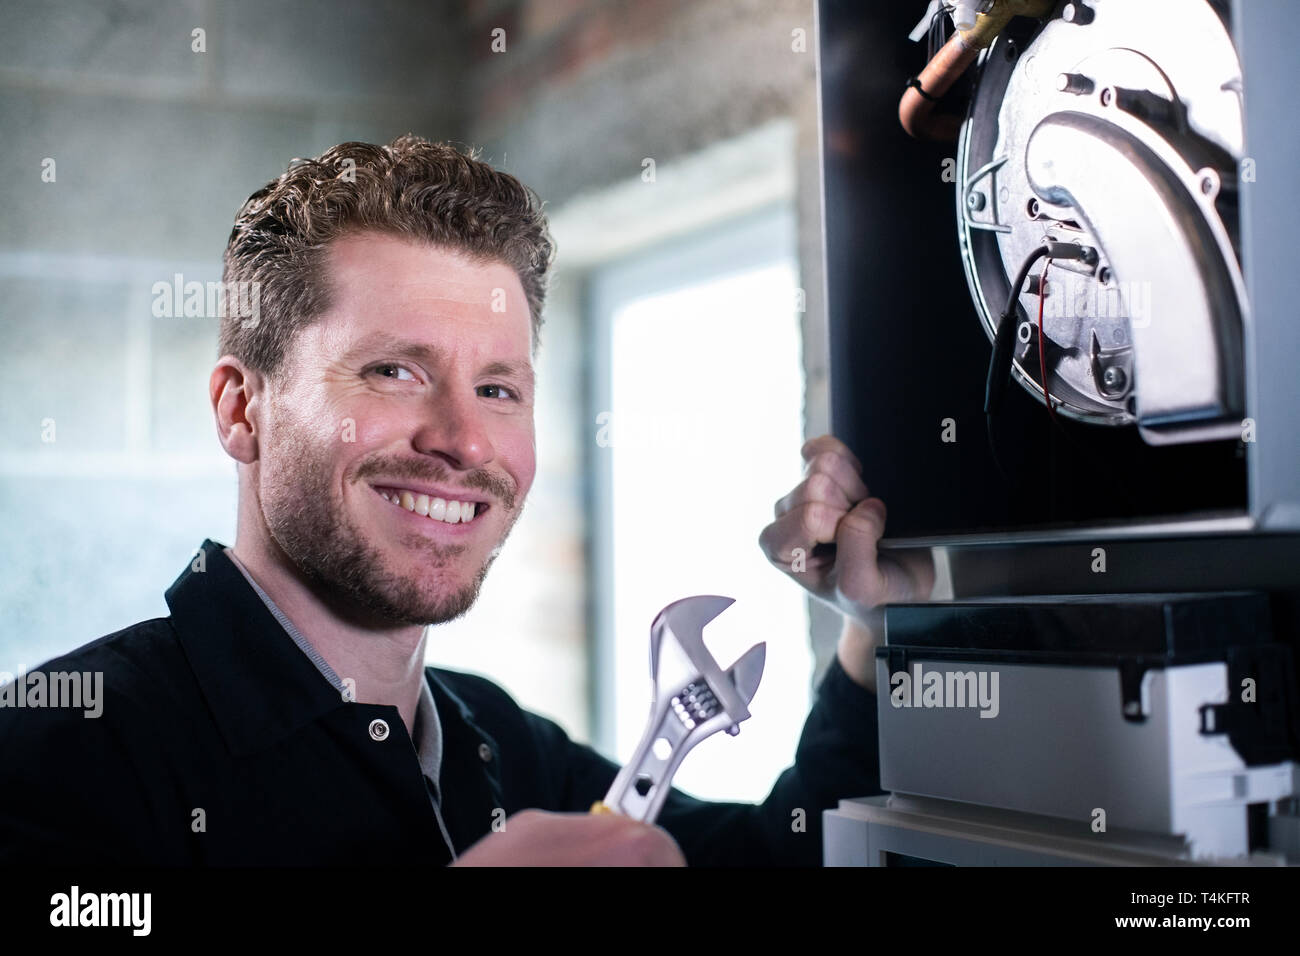 Portrait Of Male Heating Engineer With Adjustable Wrench Servicing Boiler - Stock Image